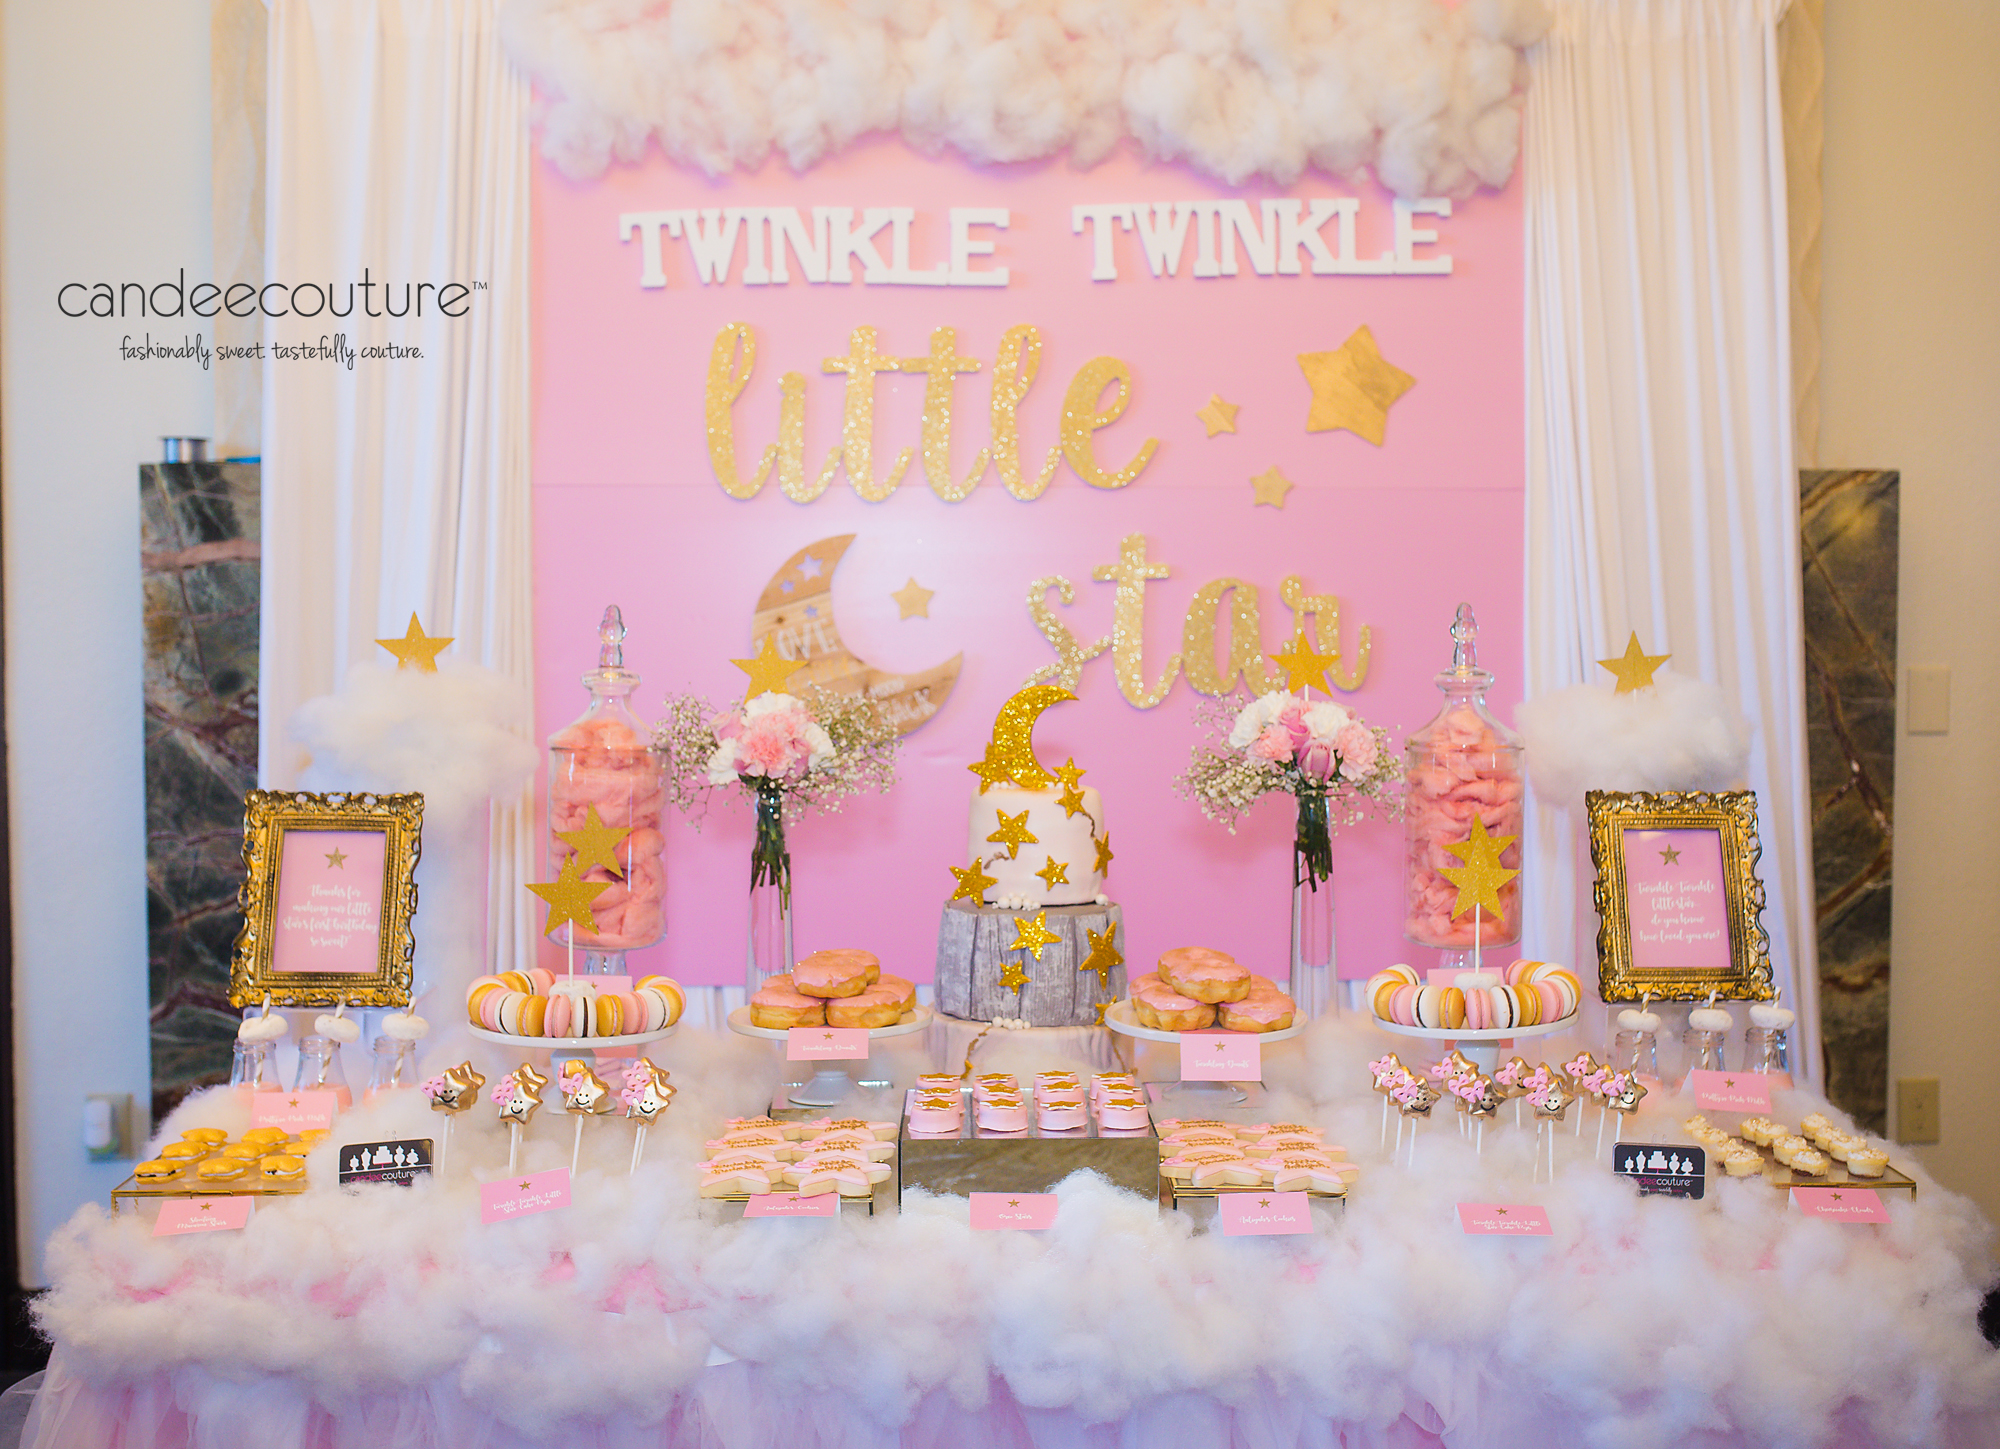 Twinkle little star baby shower dessert table